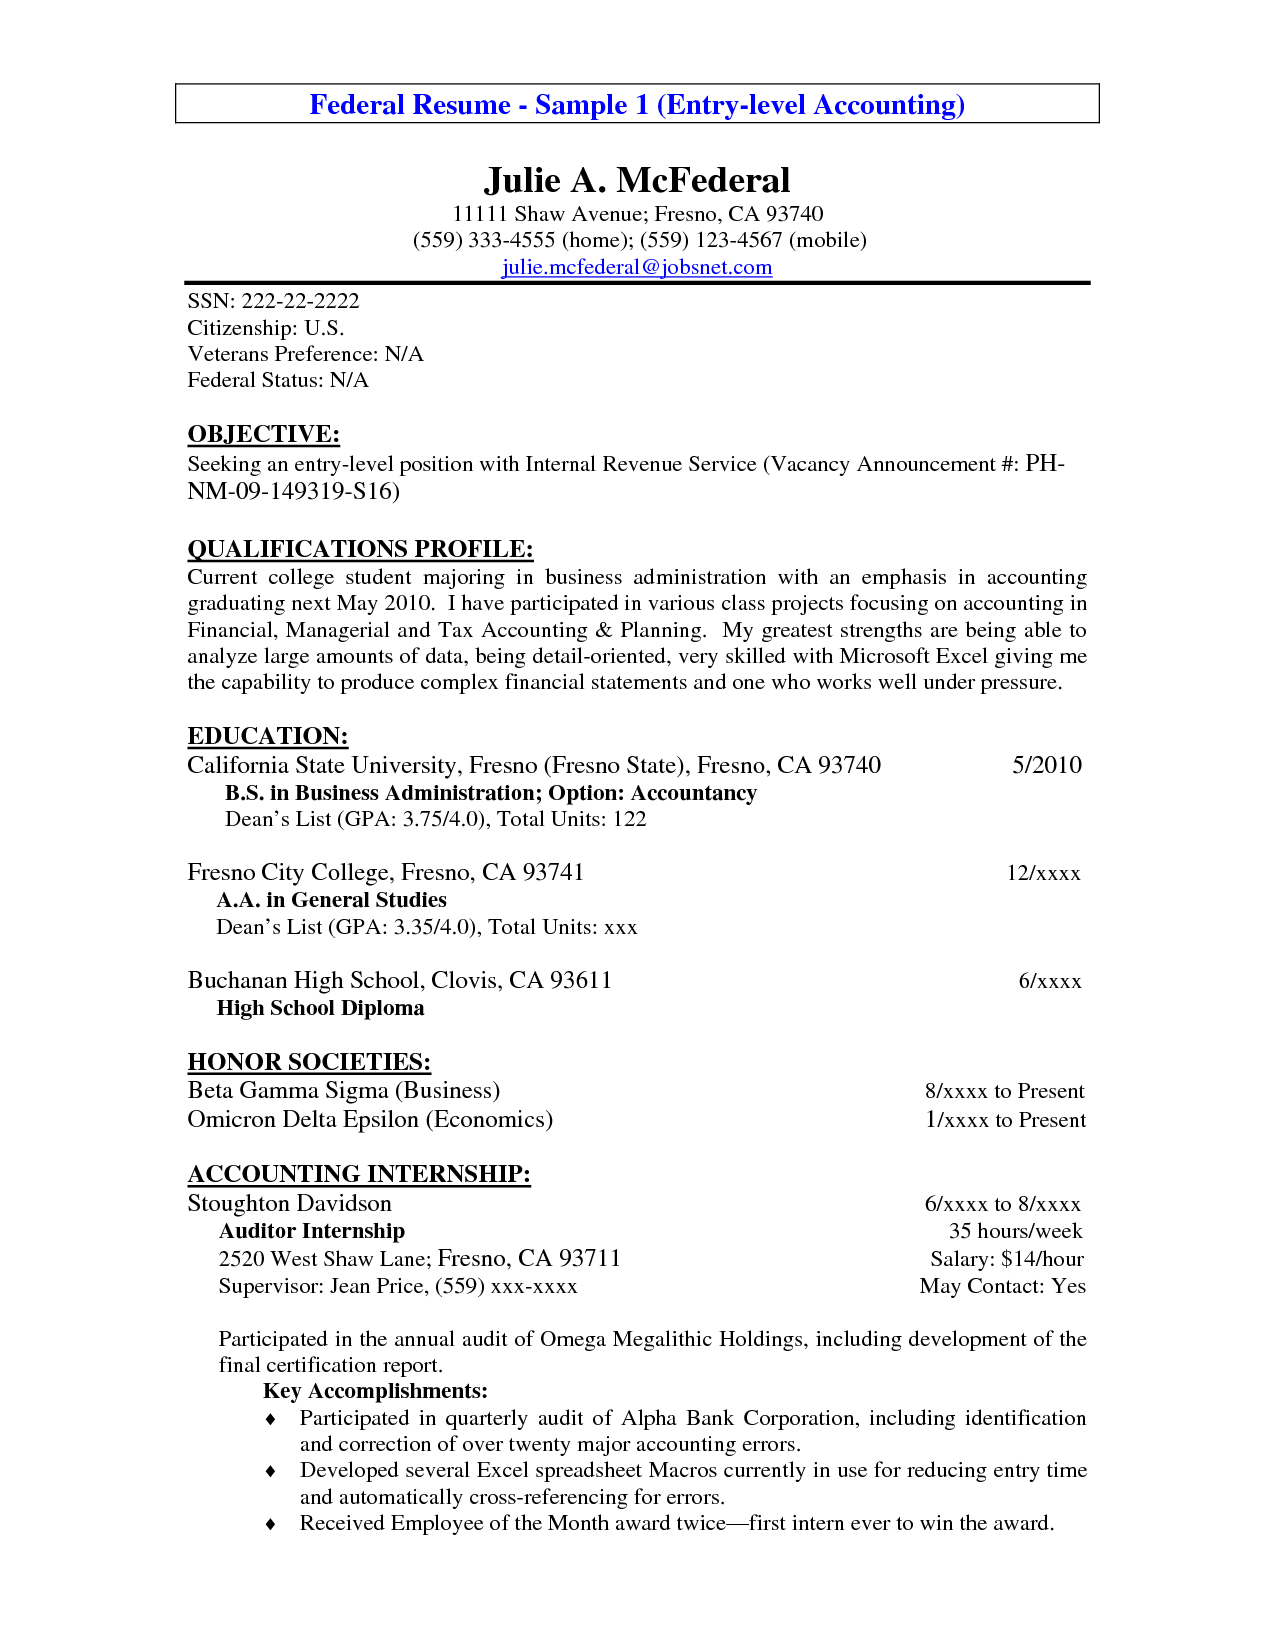 An Objective For A Resume Accounting Resume Objectives Read More  Httpwww